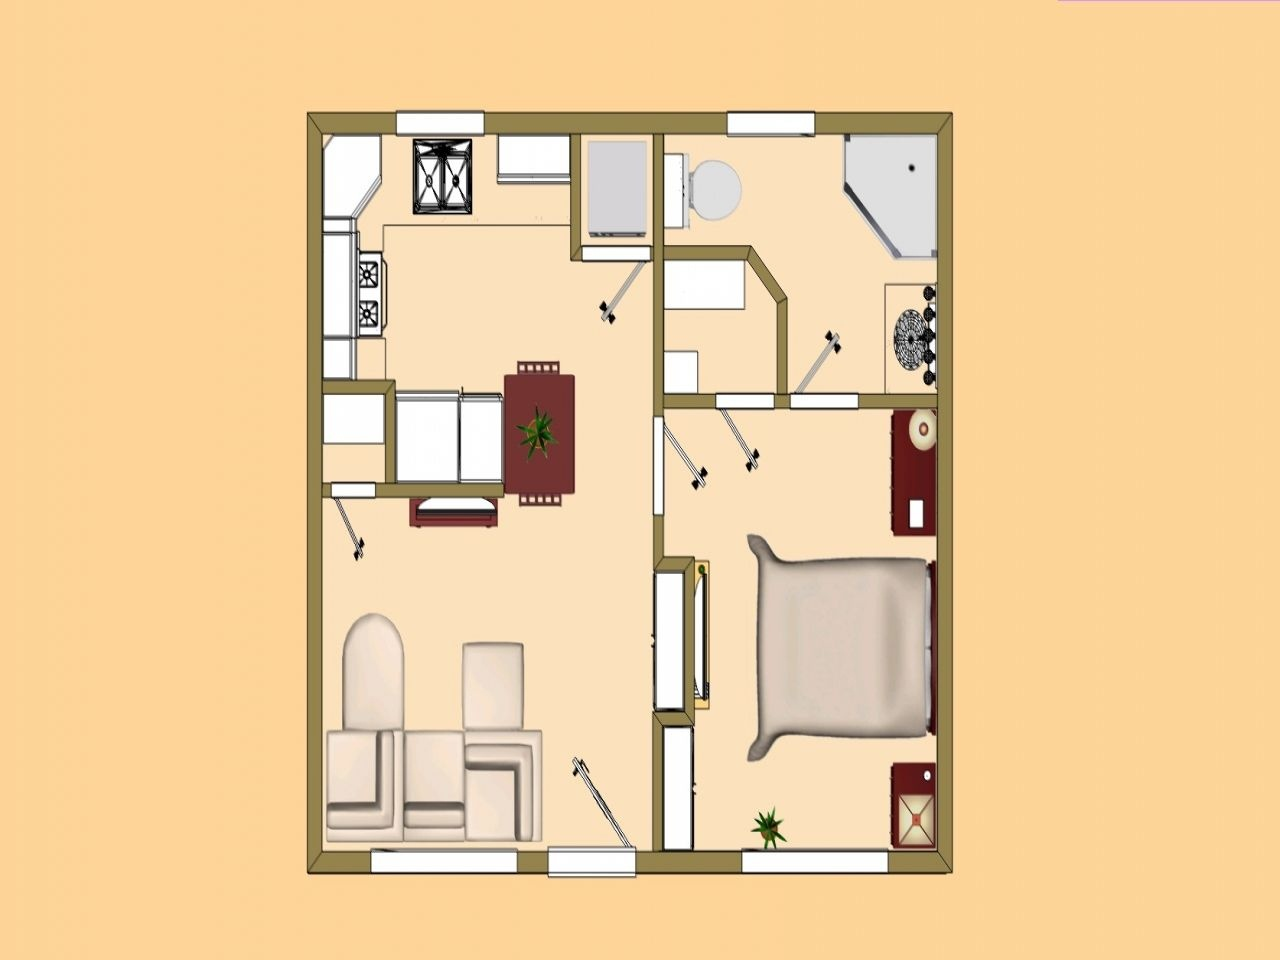 500 Sf House Plans Uk Small 400 Sq Ft To Under Less Than Square 13 - Free Printable Small House Plans